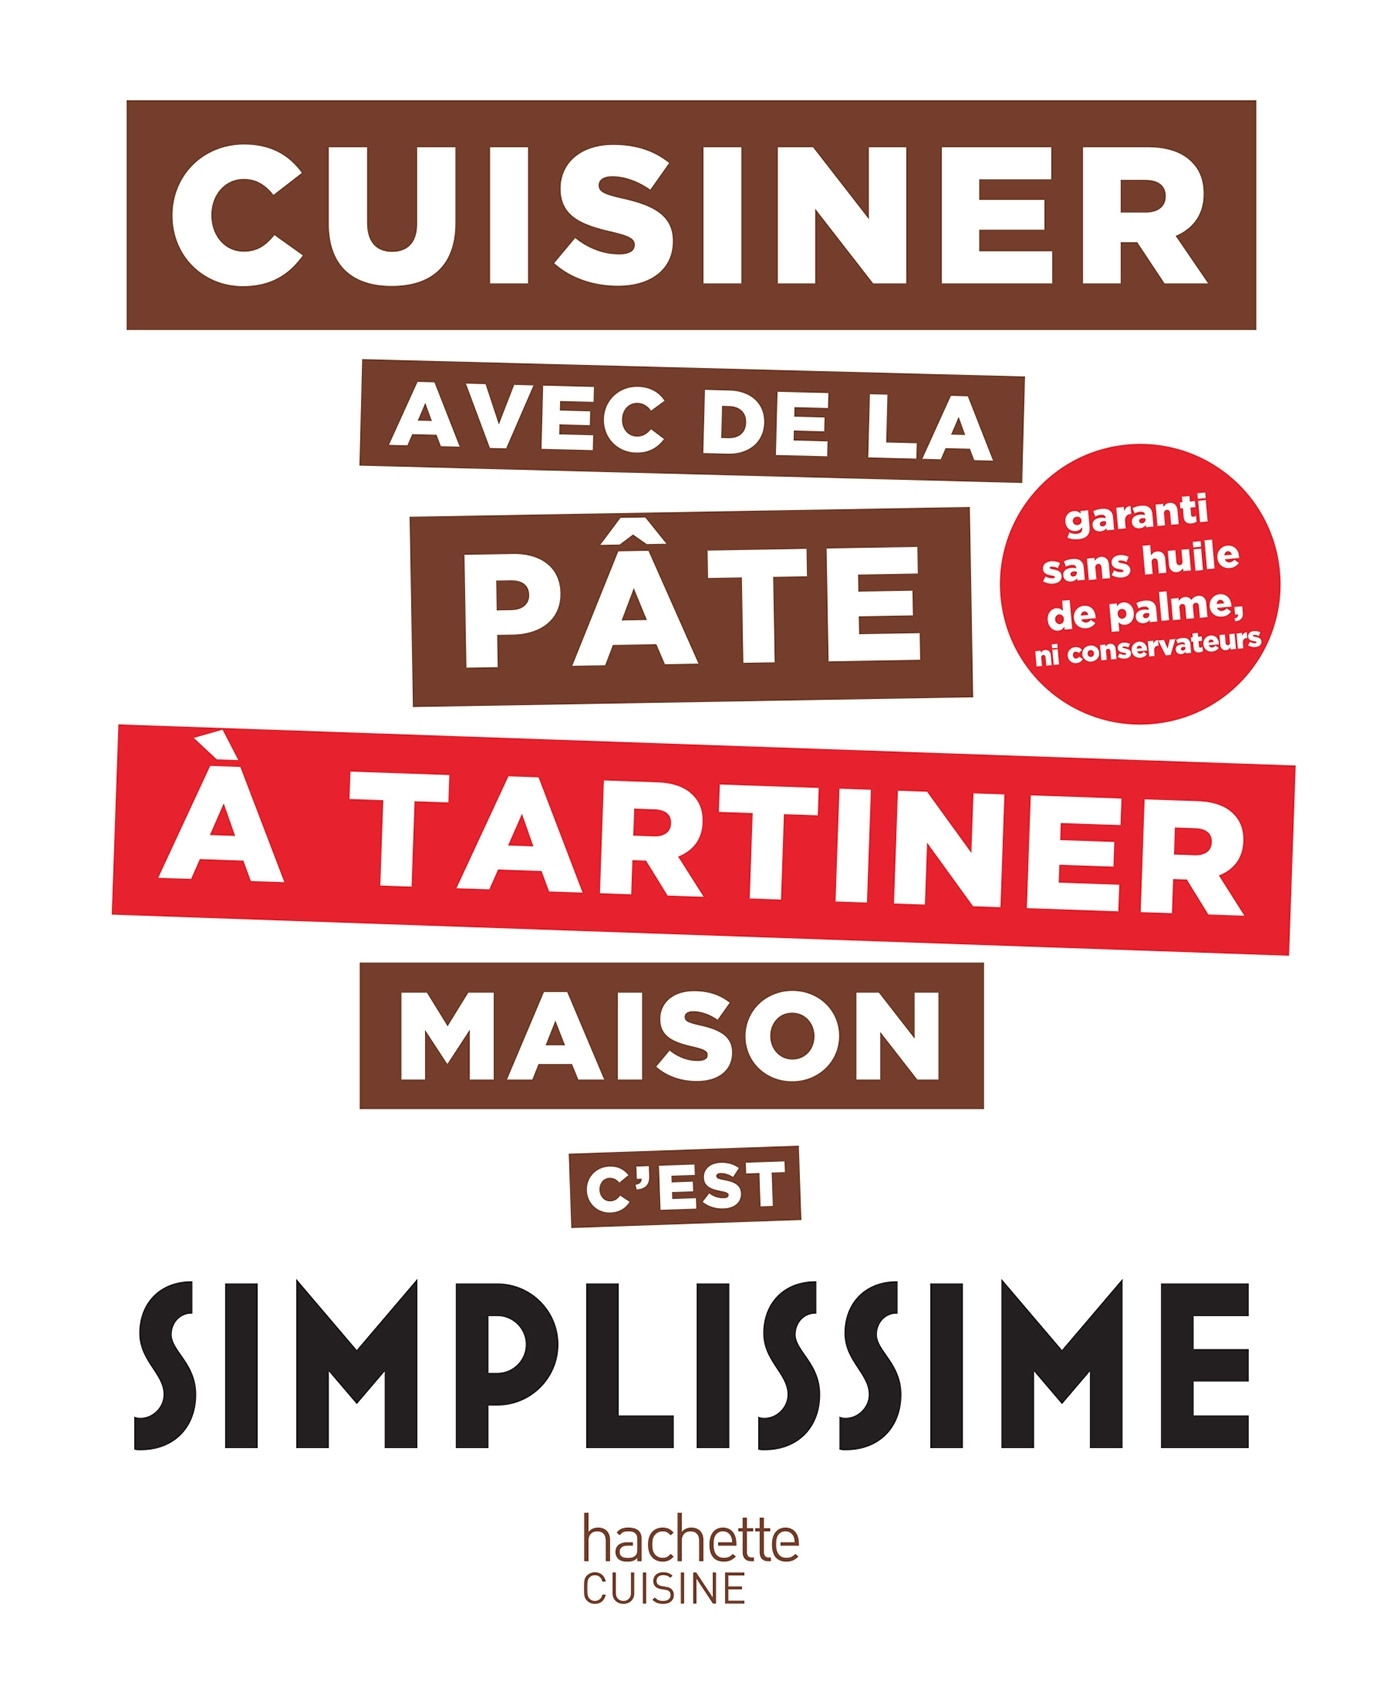 PATE A TARTINER MAISON SIMPLISSIME